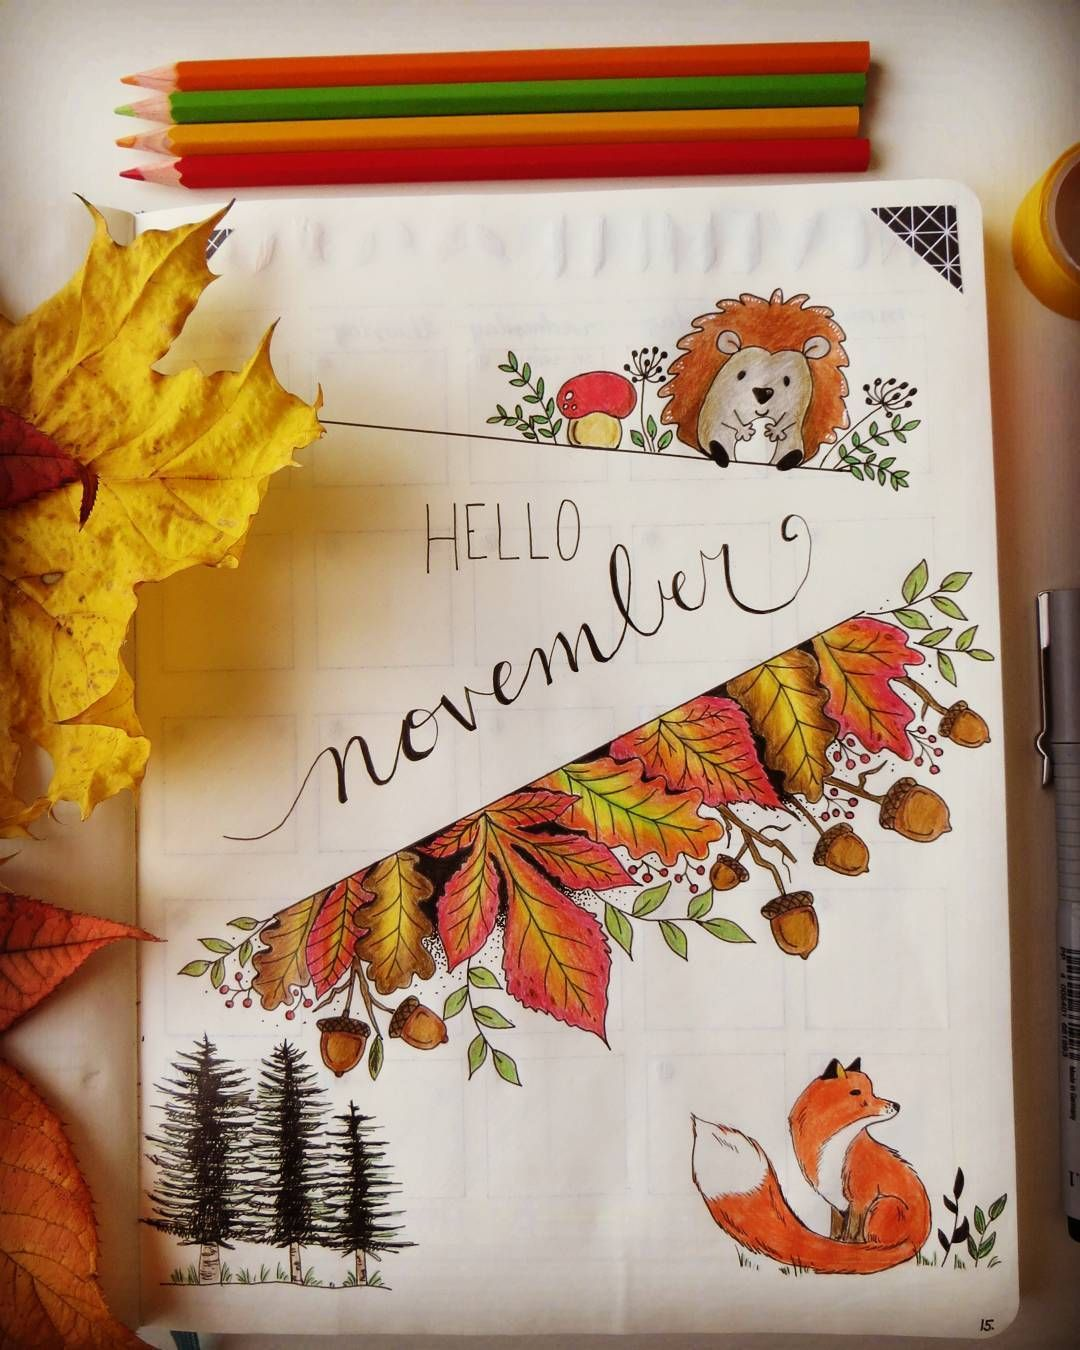 "Natasha C on Instagram: ""My hello November page. A bit late, but just wanted to draw some leaves and a little hedgehog. :-) #autumn My hello November page. Love autumn for all its beautiful colors."